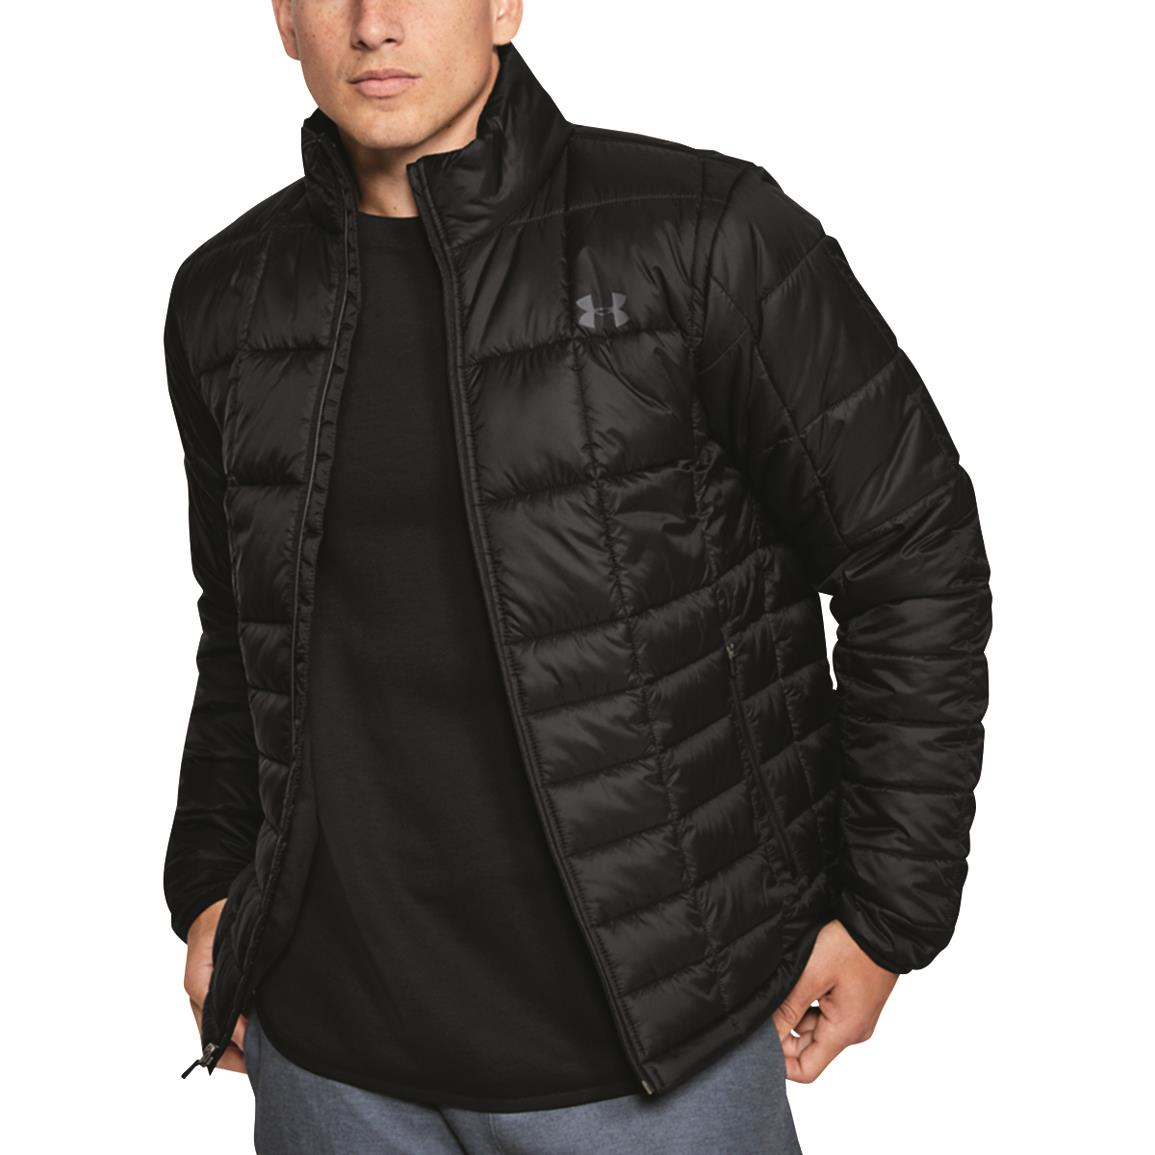 Under Armour Men's Armour Insulated Jacket, Black/pitch Gray